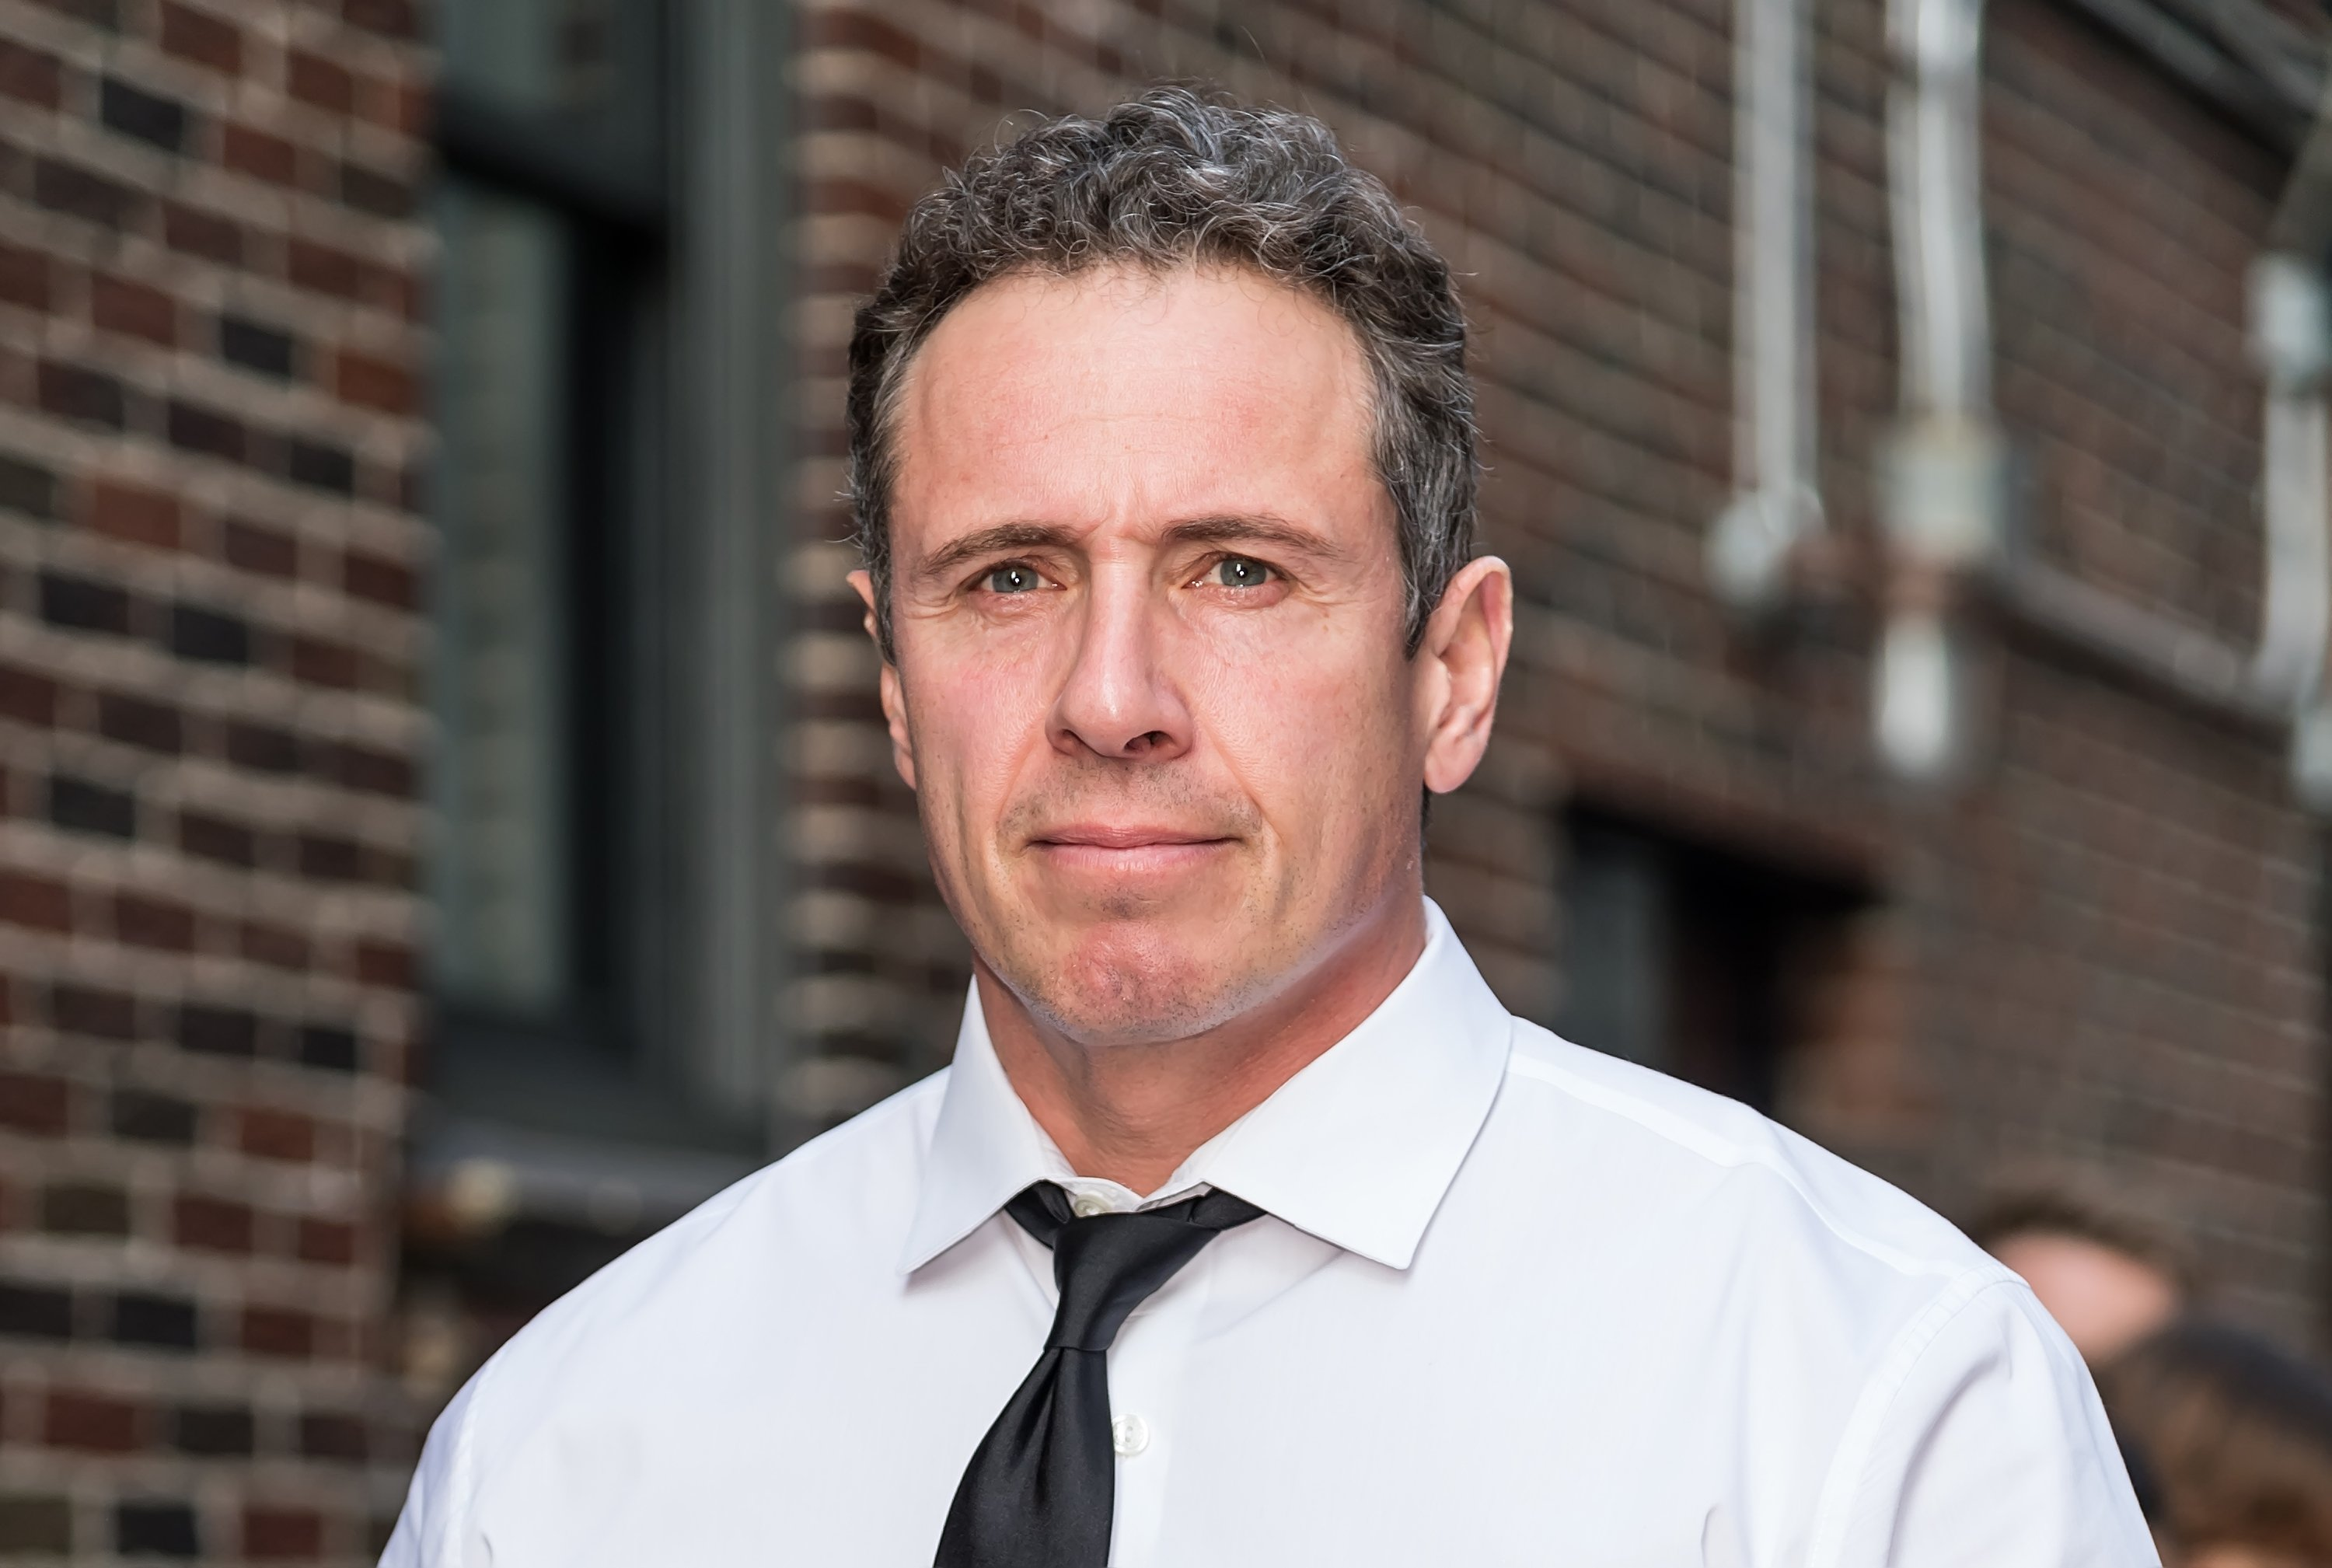 Chris Cuomo at the Ed Sullivan Theater on May 2, 2019, in New York City. | Photo: Getty Images.